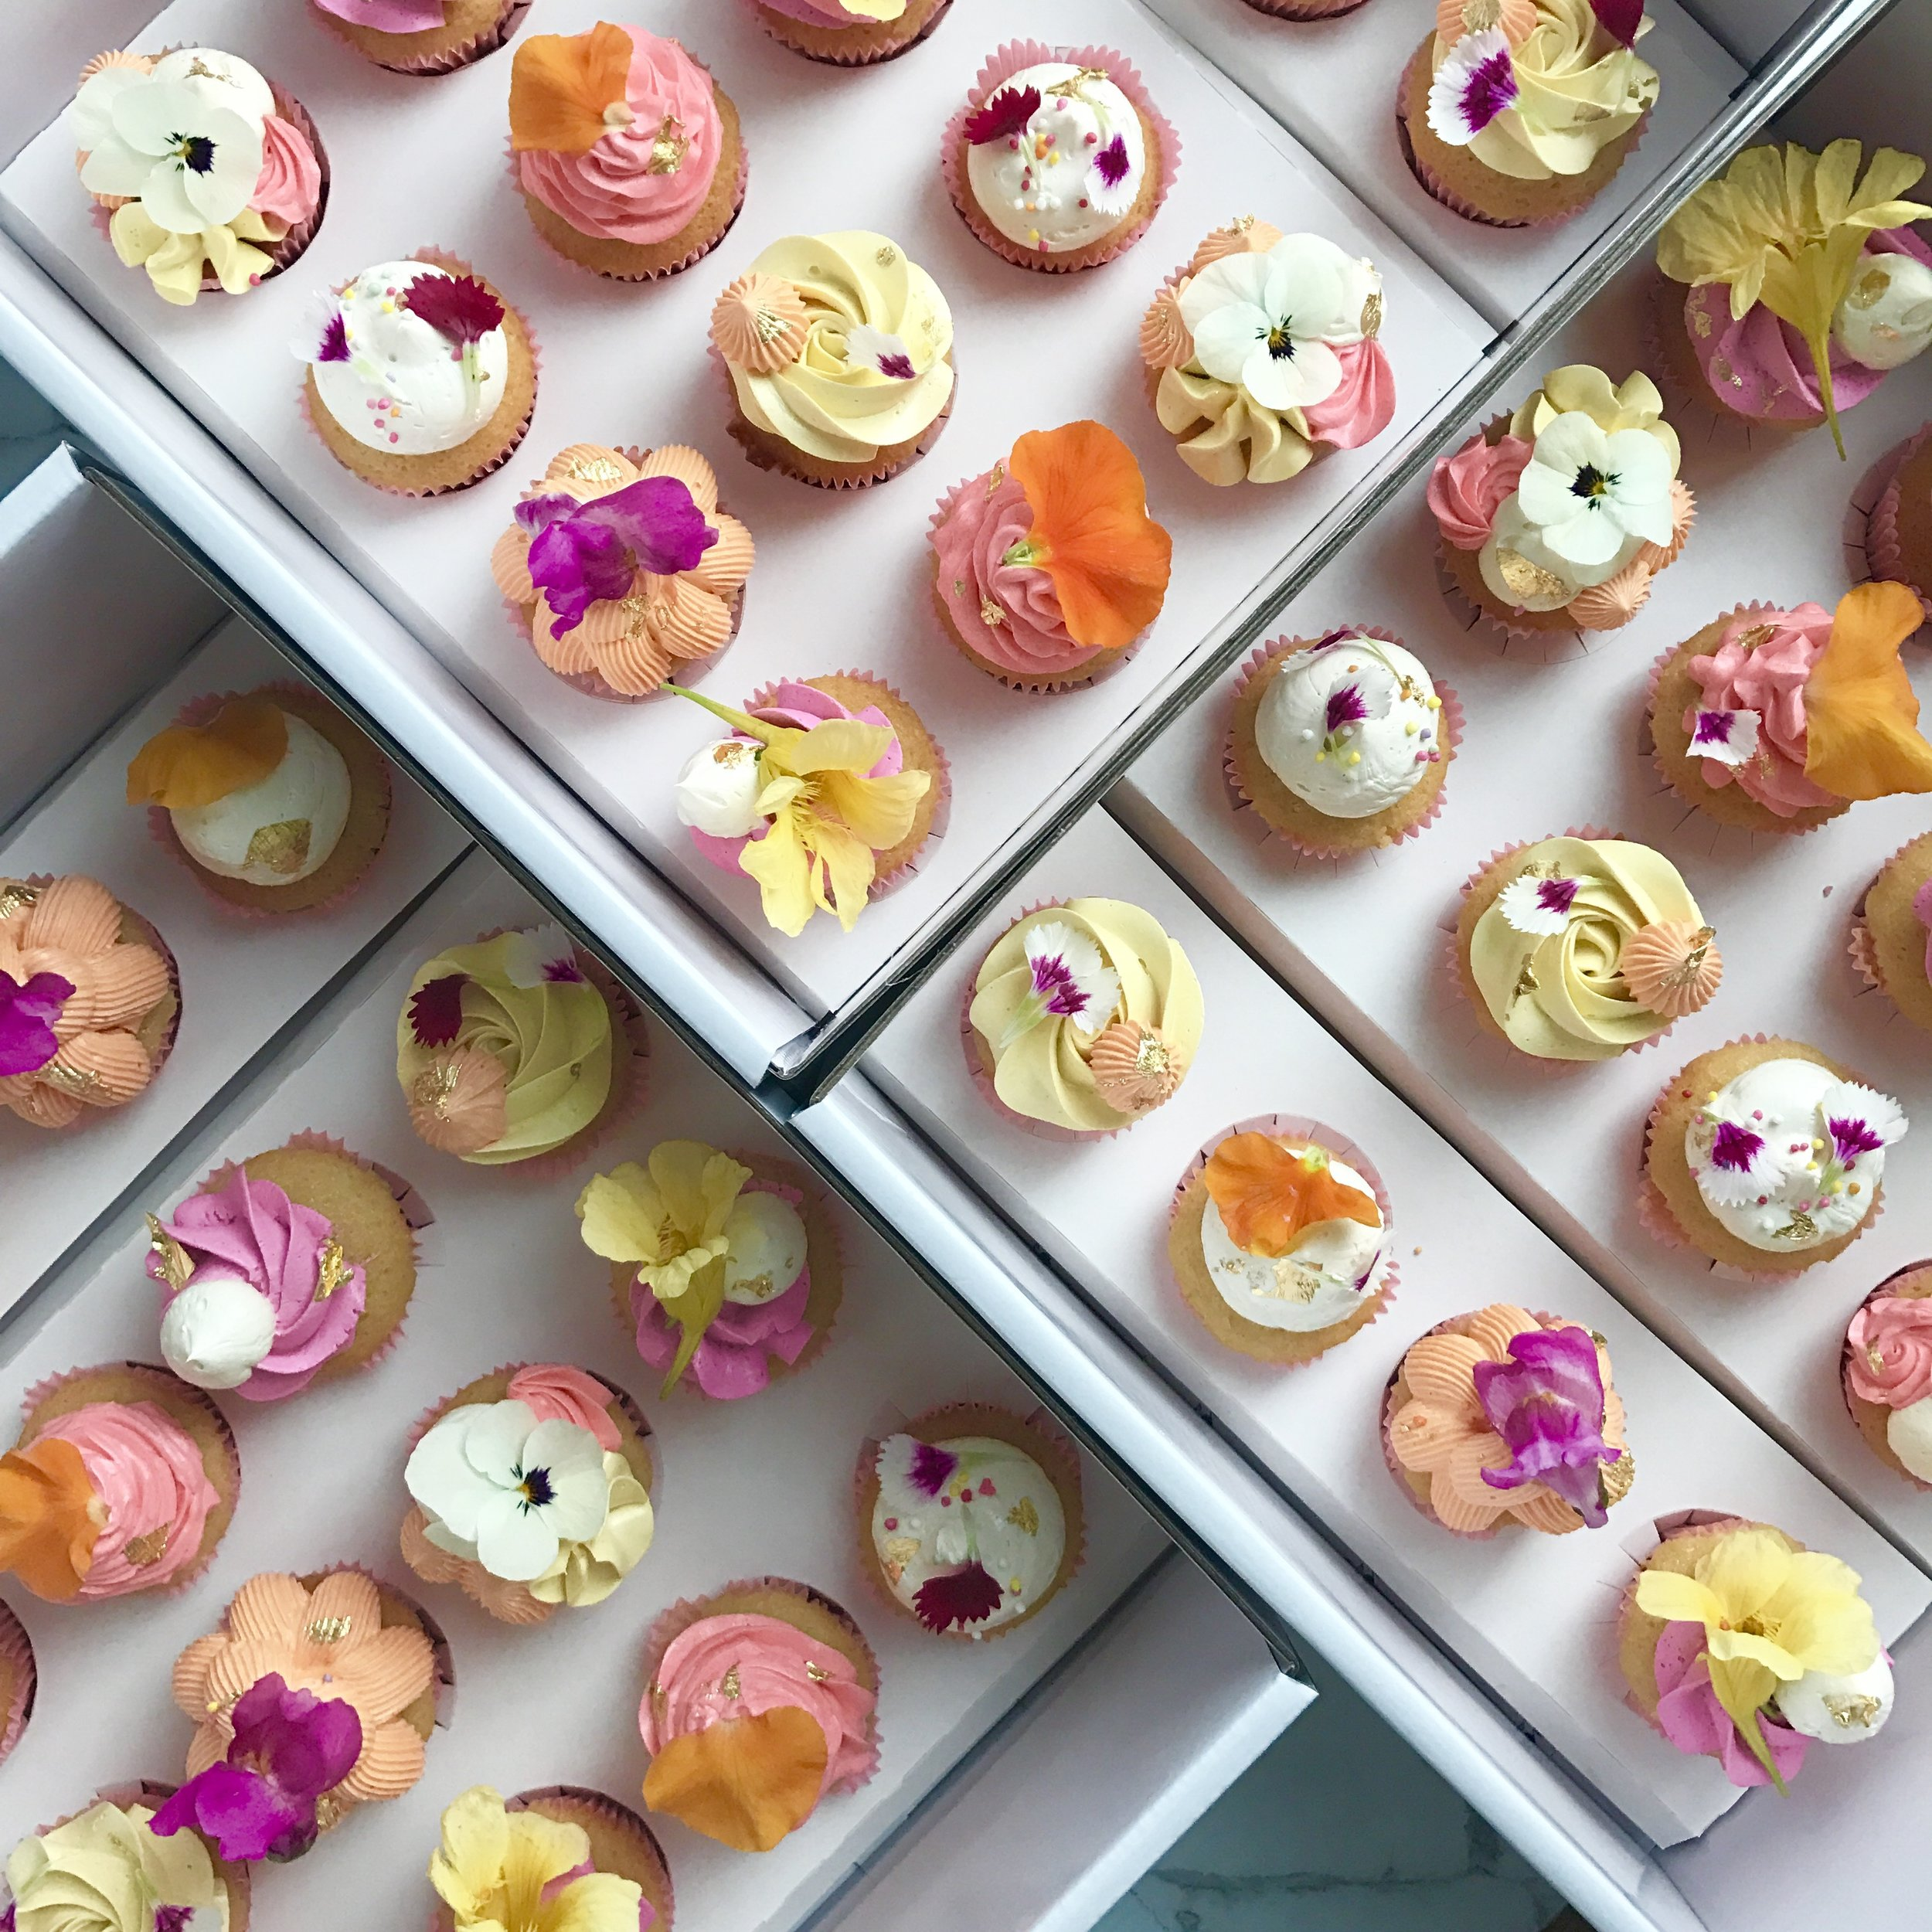 BABY SIZE BUTTERCREAM CUPCAKES WITH EDIBLE FLOWERS  From: $2.50 each  Minimum Order Quantity : 24 Per Flavour